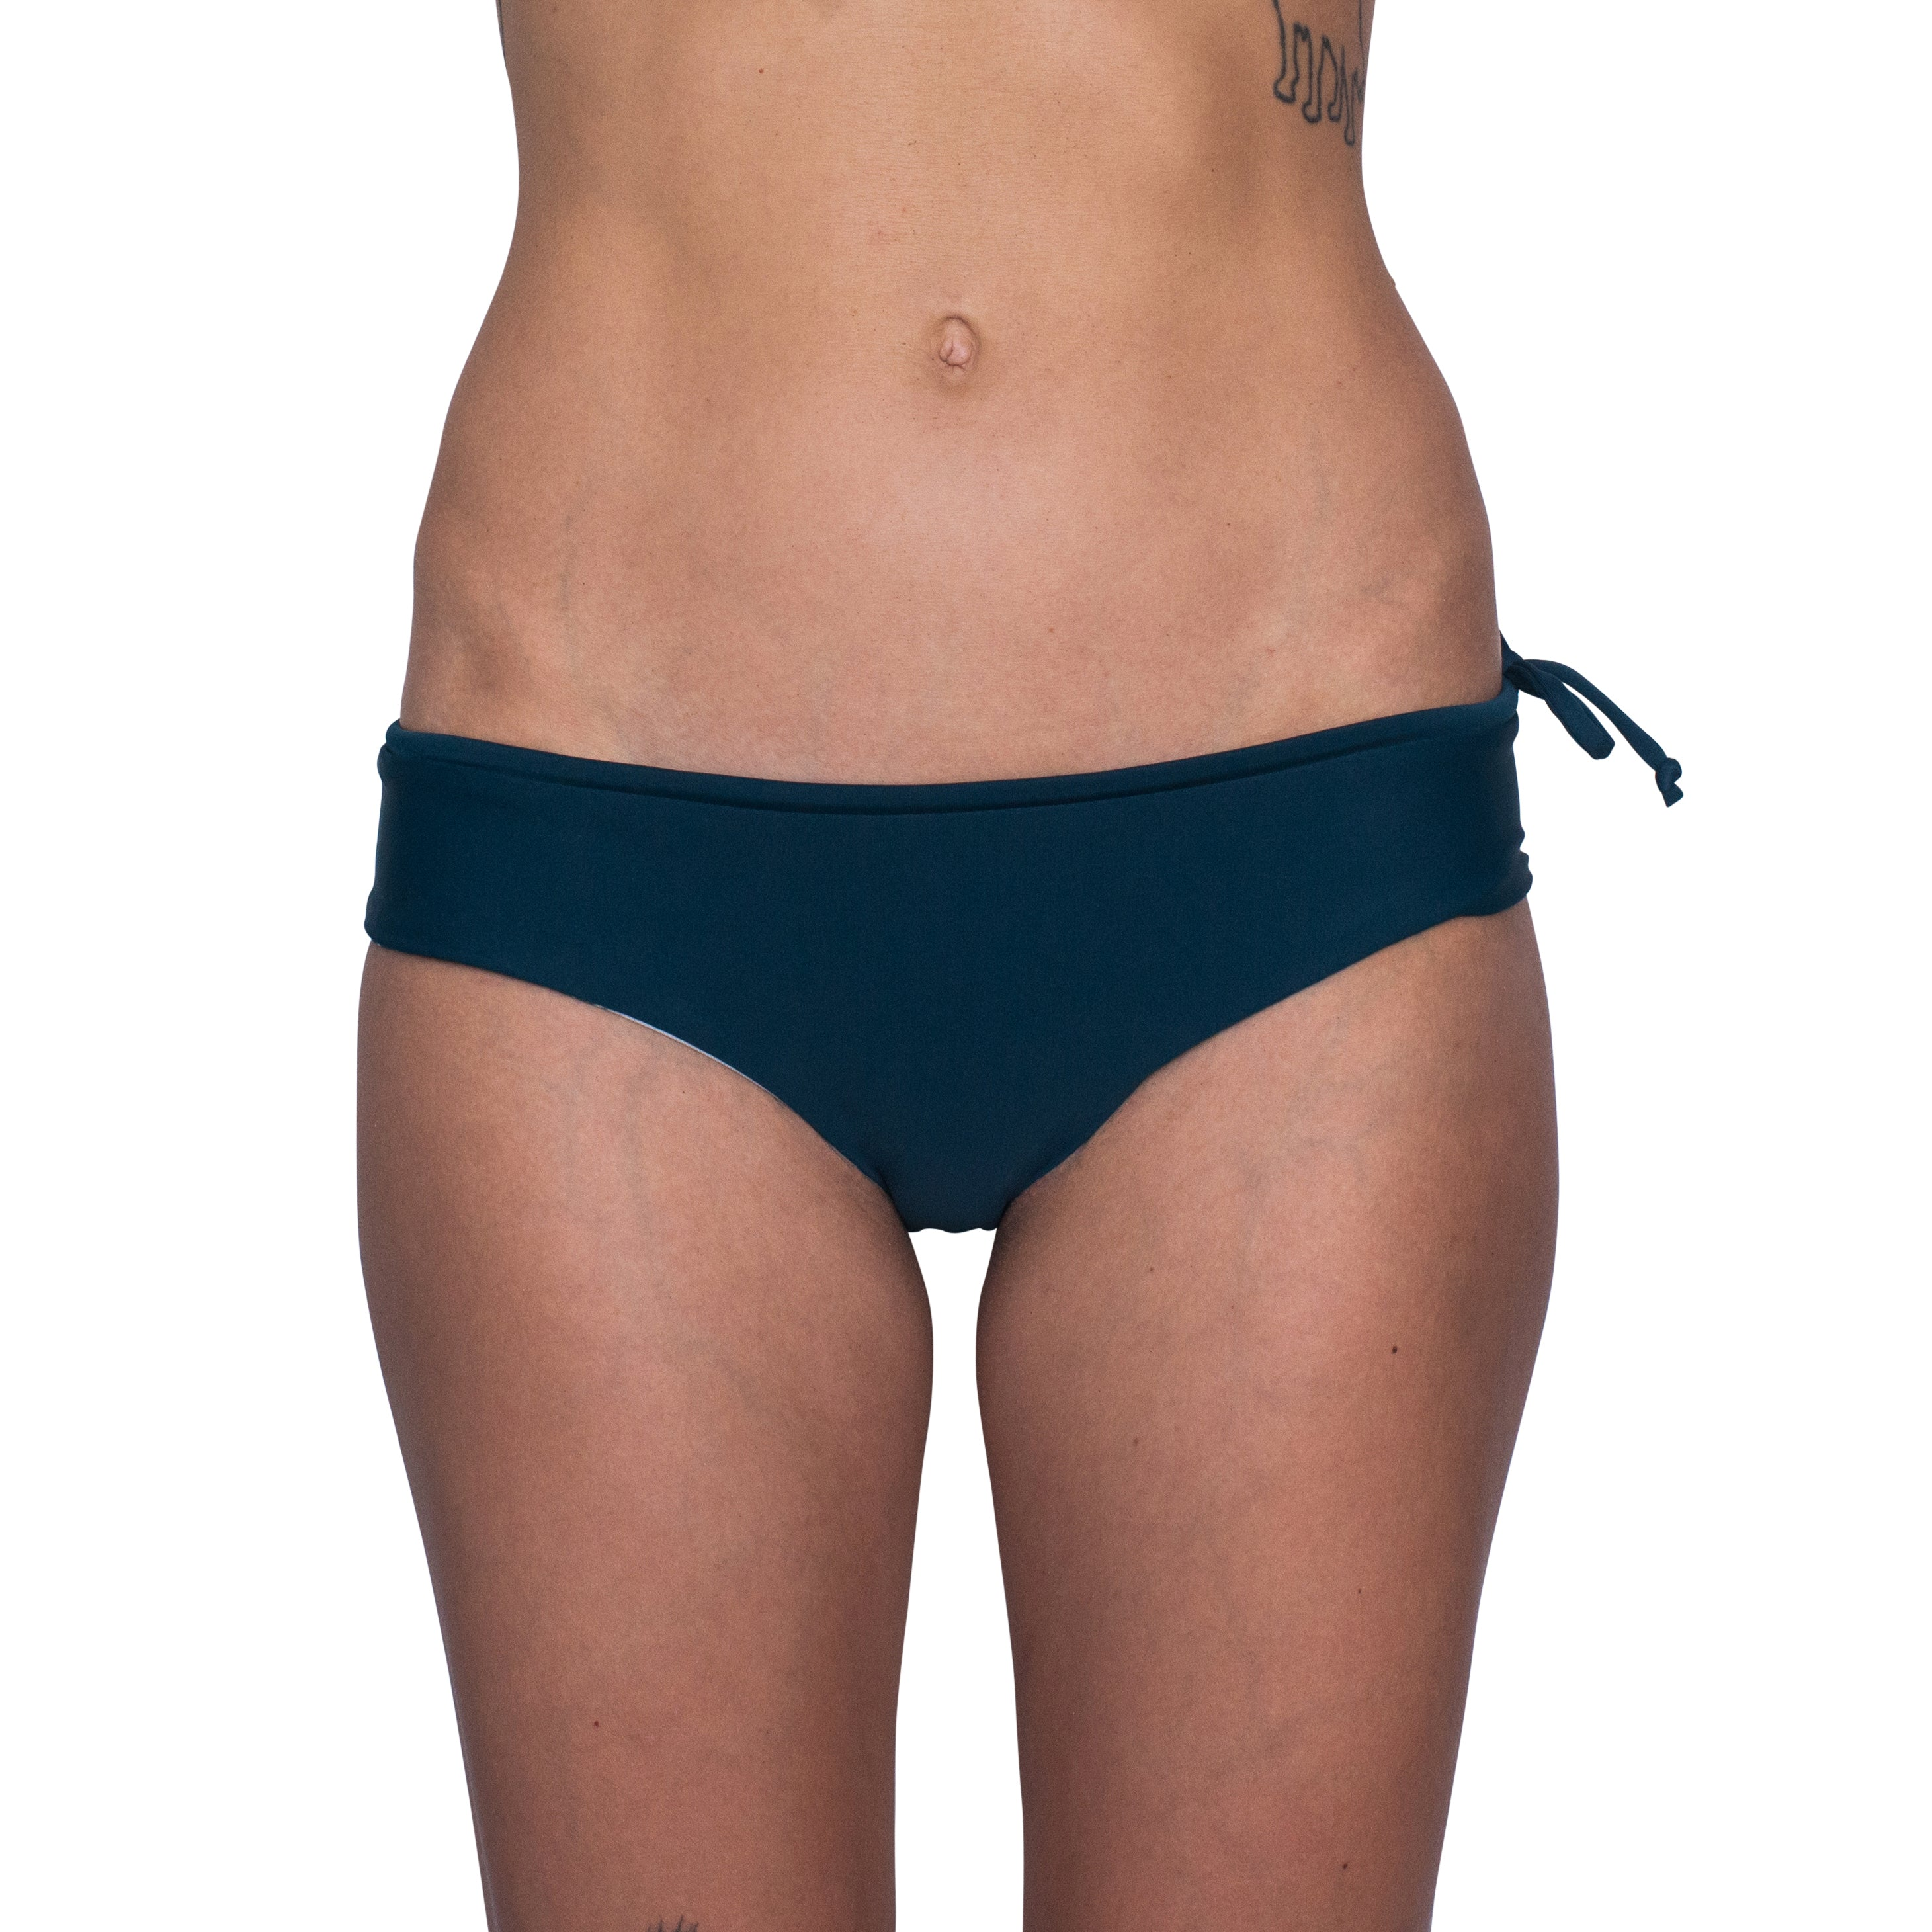 Zealous Clothing Basic Surfbikini Bottoms Lanka Livin Reversible